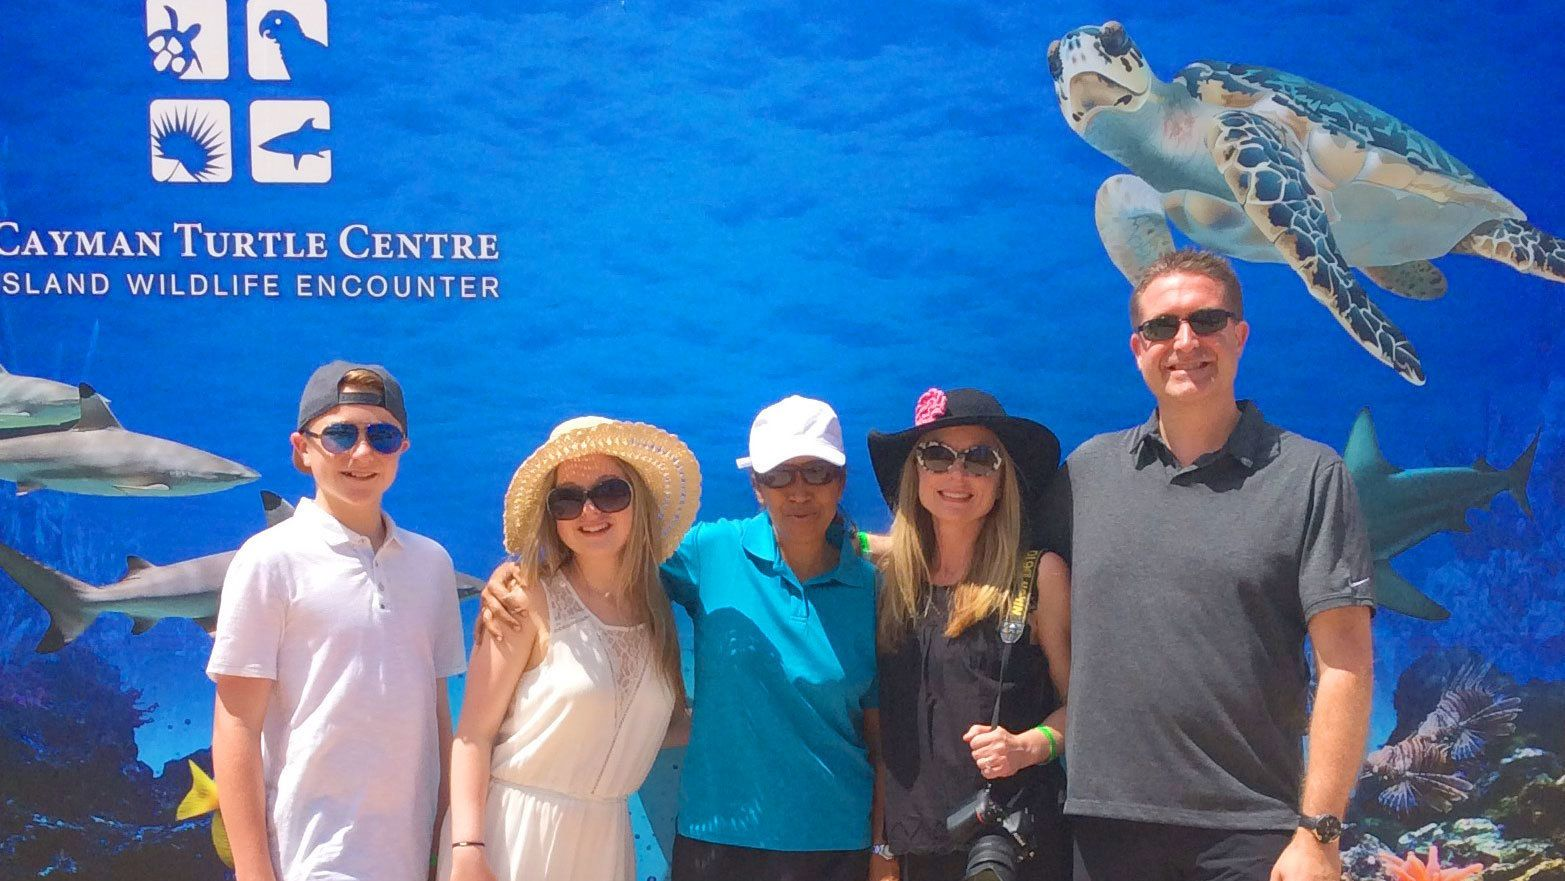 Family poses for a picture outside the Cayman Turtle Center